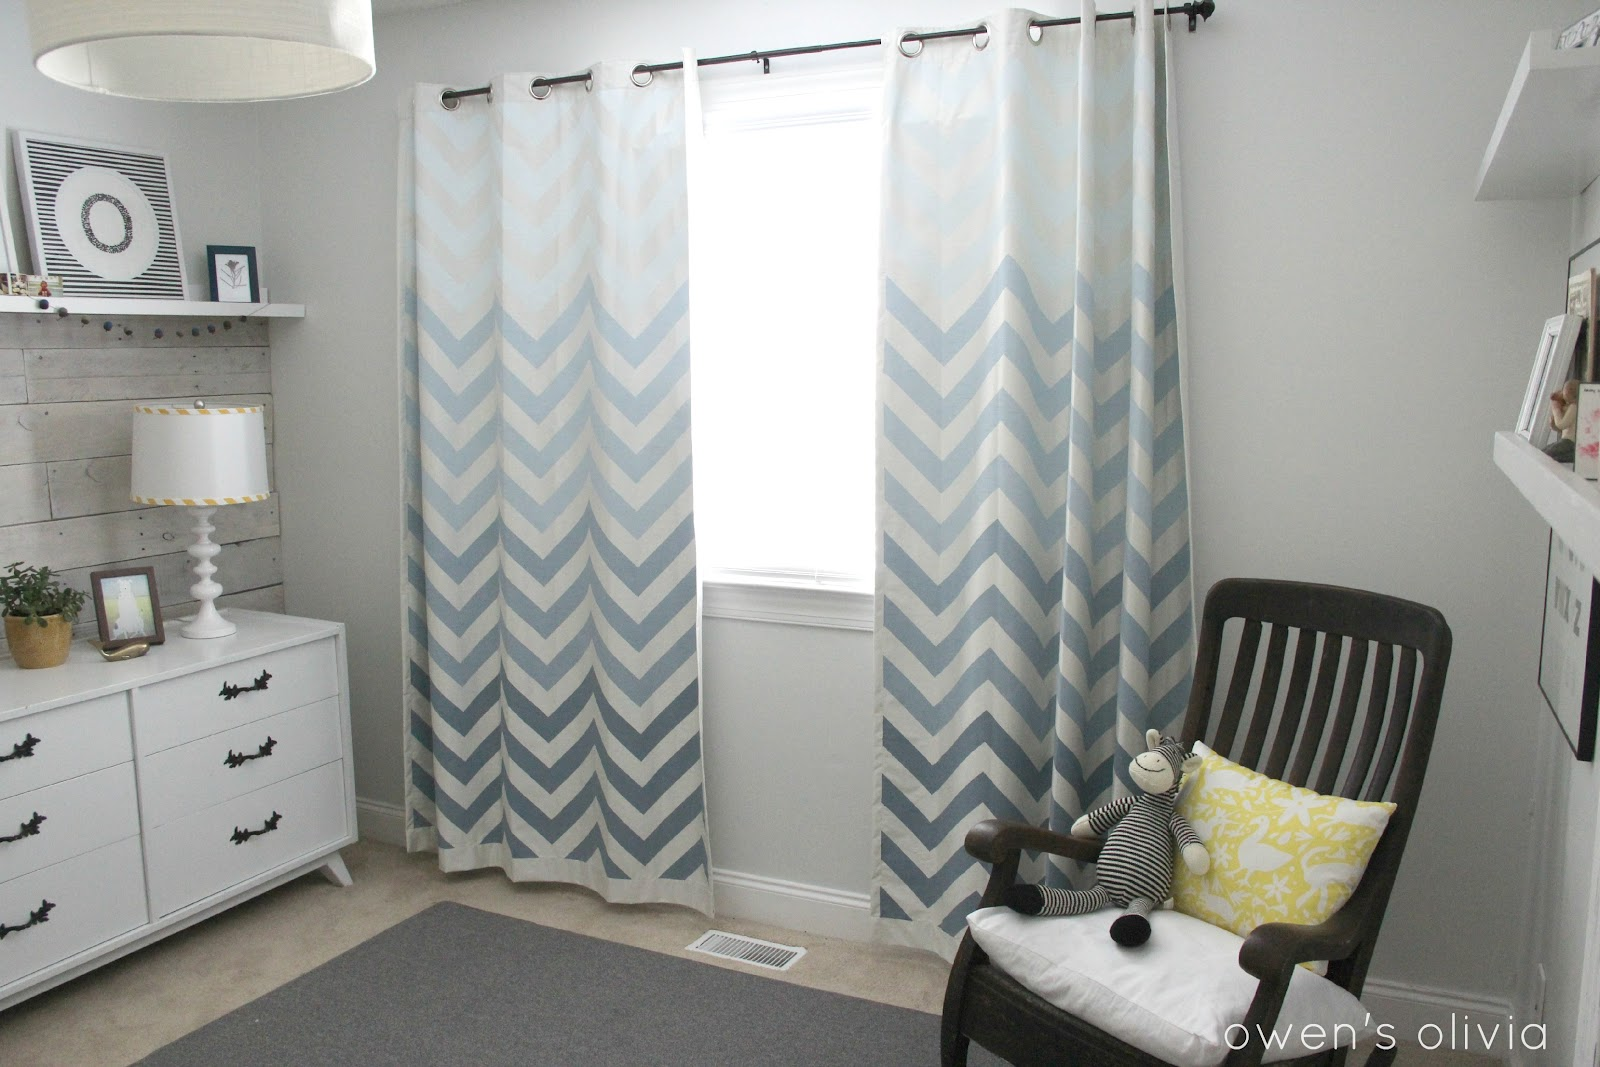 Ombre Chevron Curtains In Boys Nursery,Single Bedroom Small 1 Bedroom Apartment Design Plans